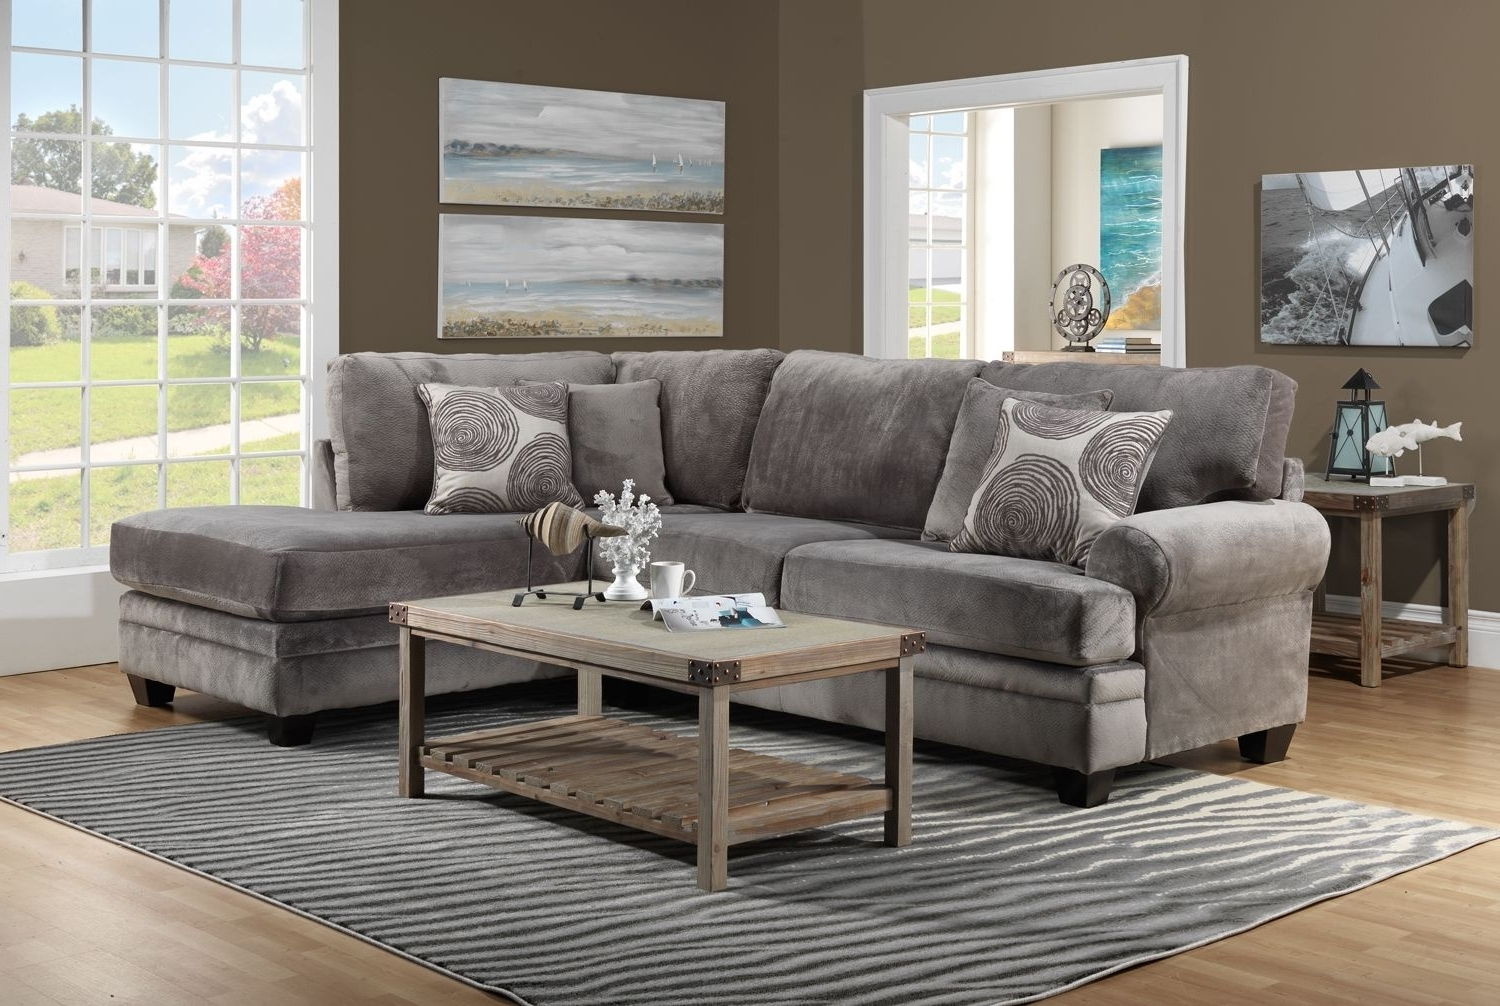 Living Room Furniture The Lana Collection Lana 2 Pc (View 8 of 15)